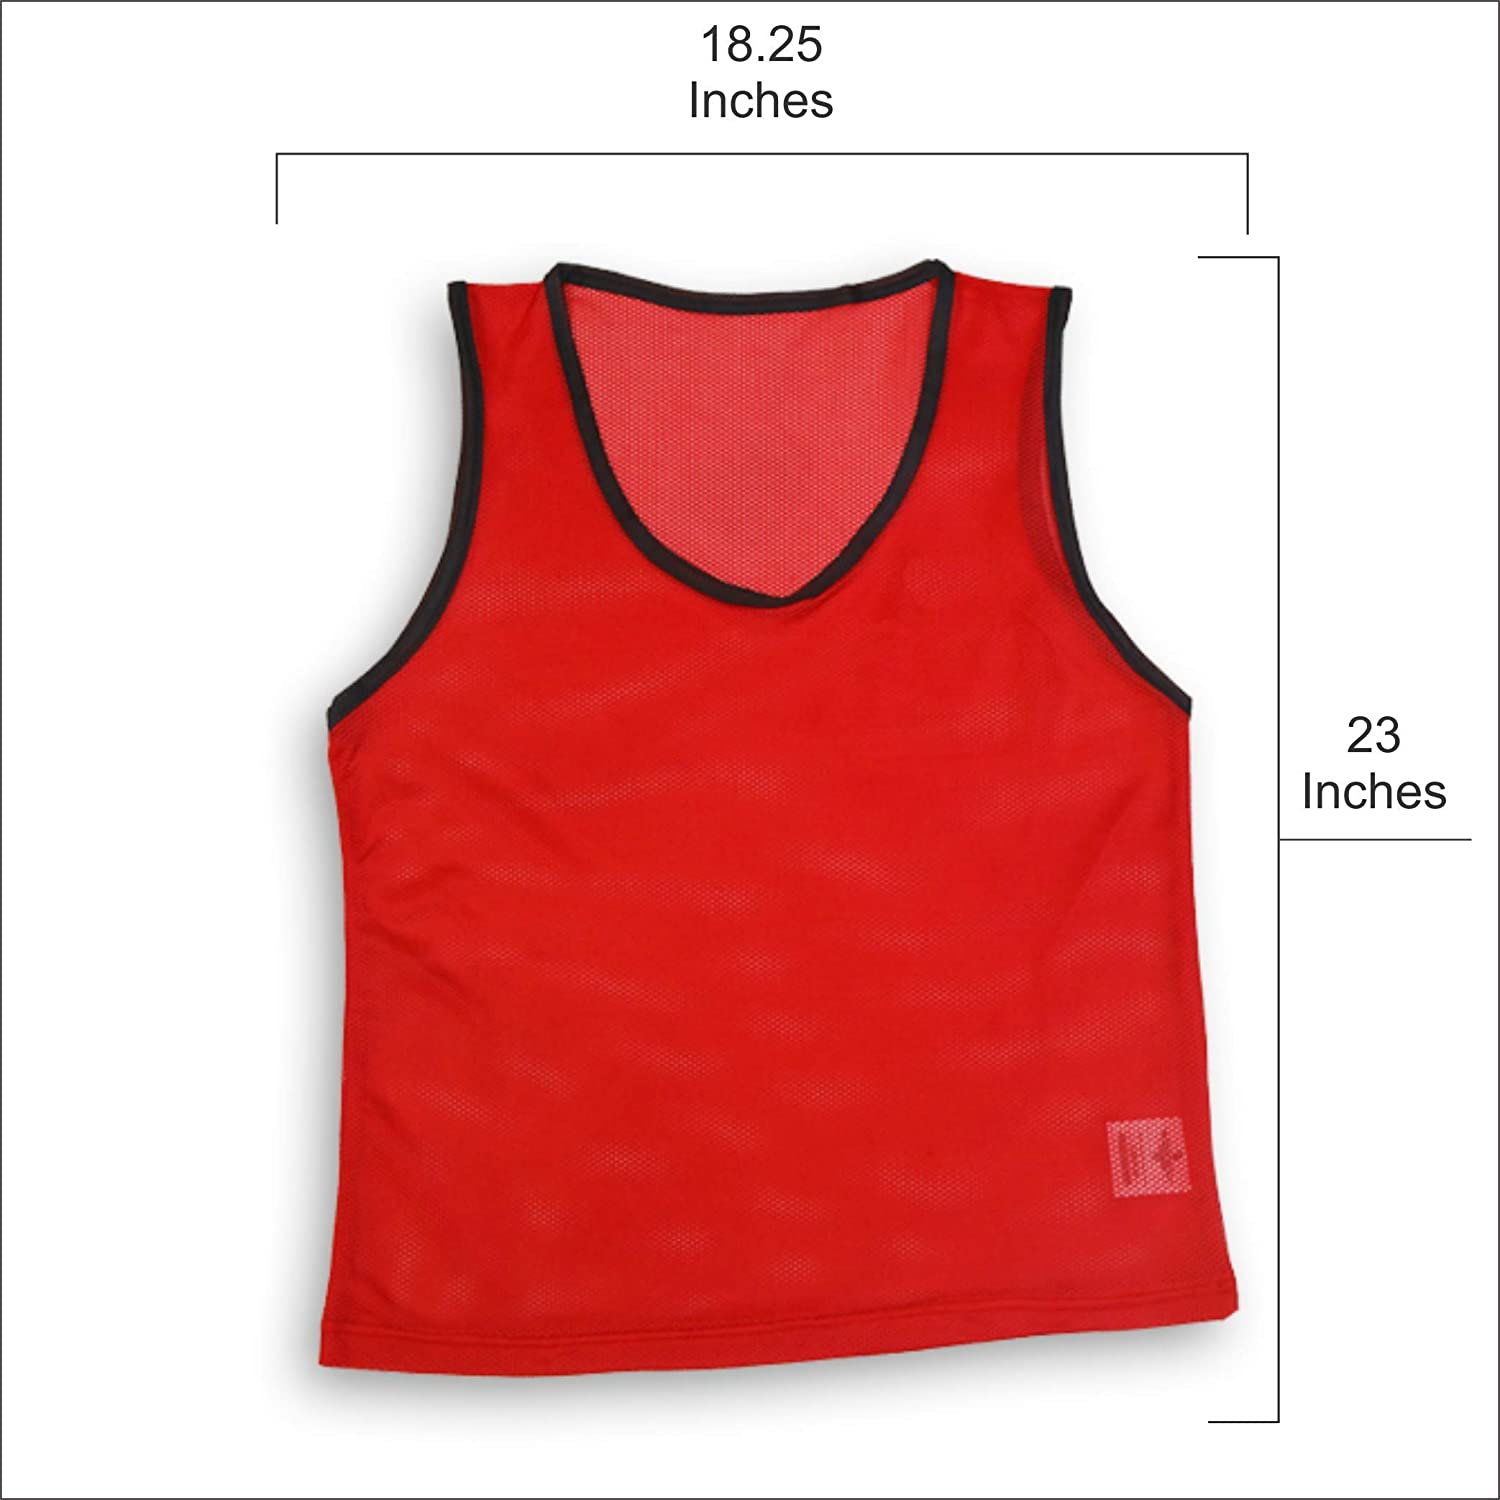 Exxact Youth Scrimmage Training Vests or Pinnies Multiple Colors for Multi Sports Sports